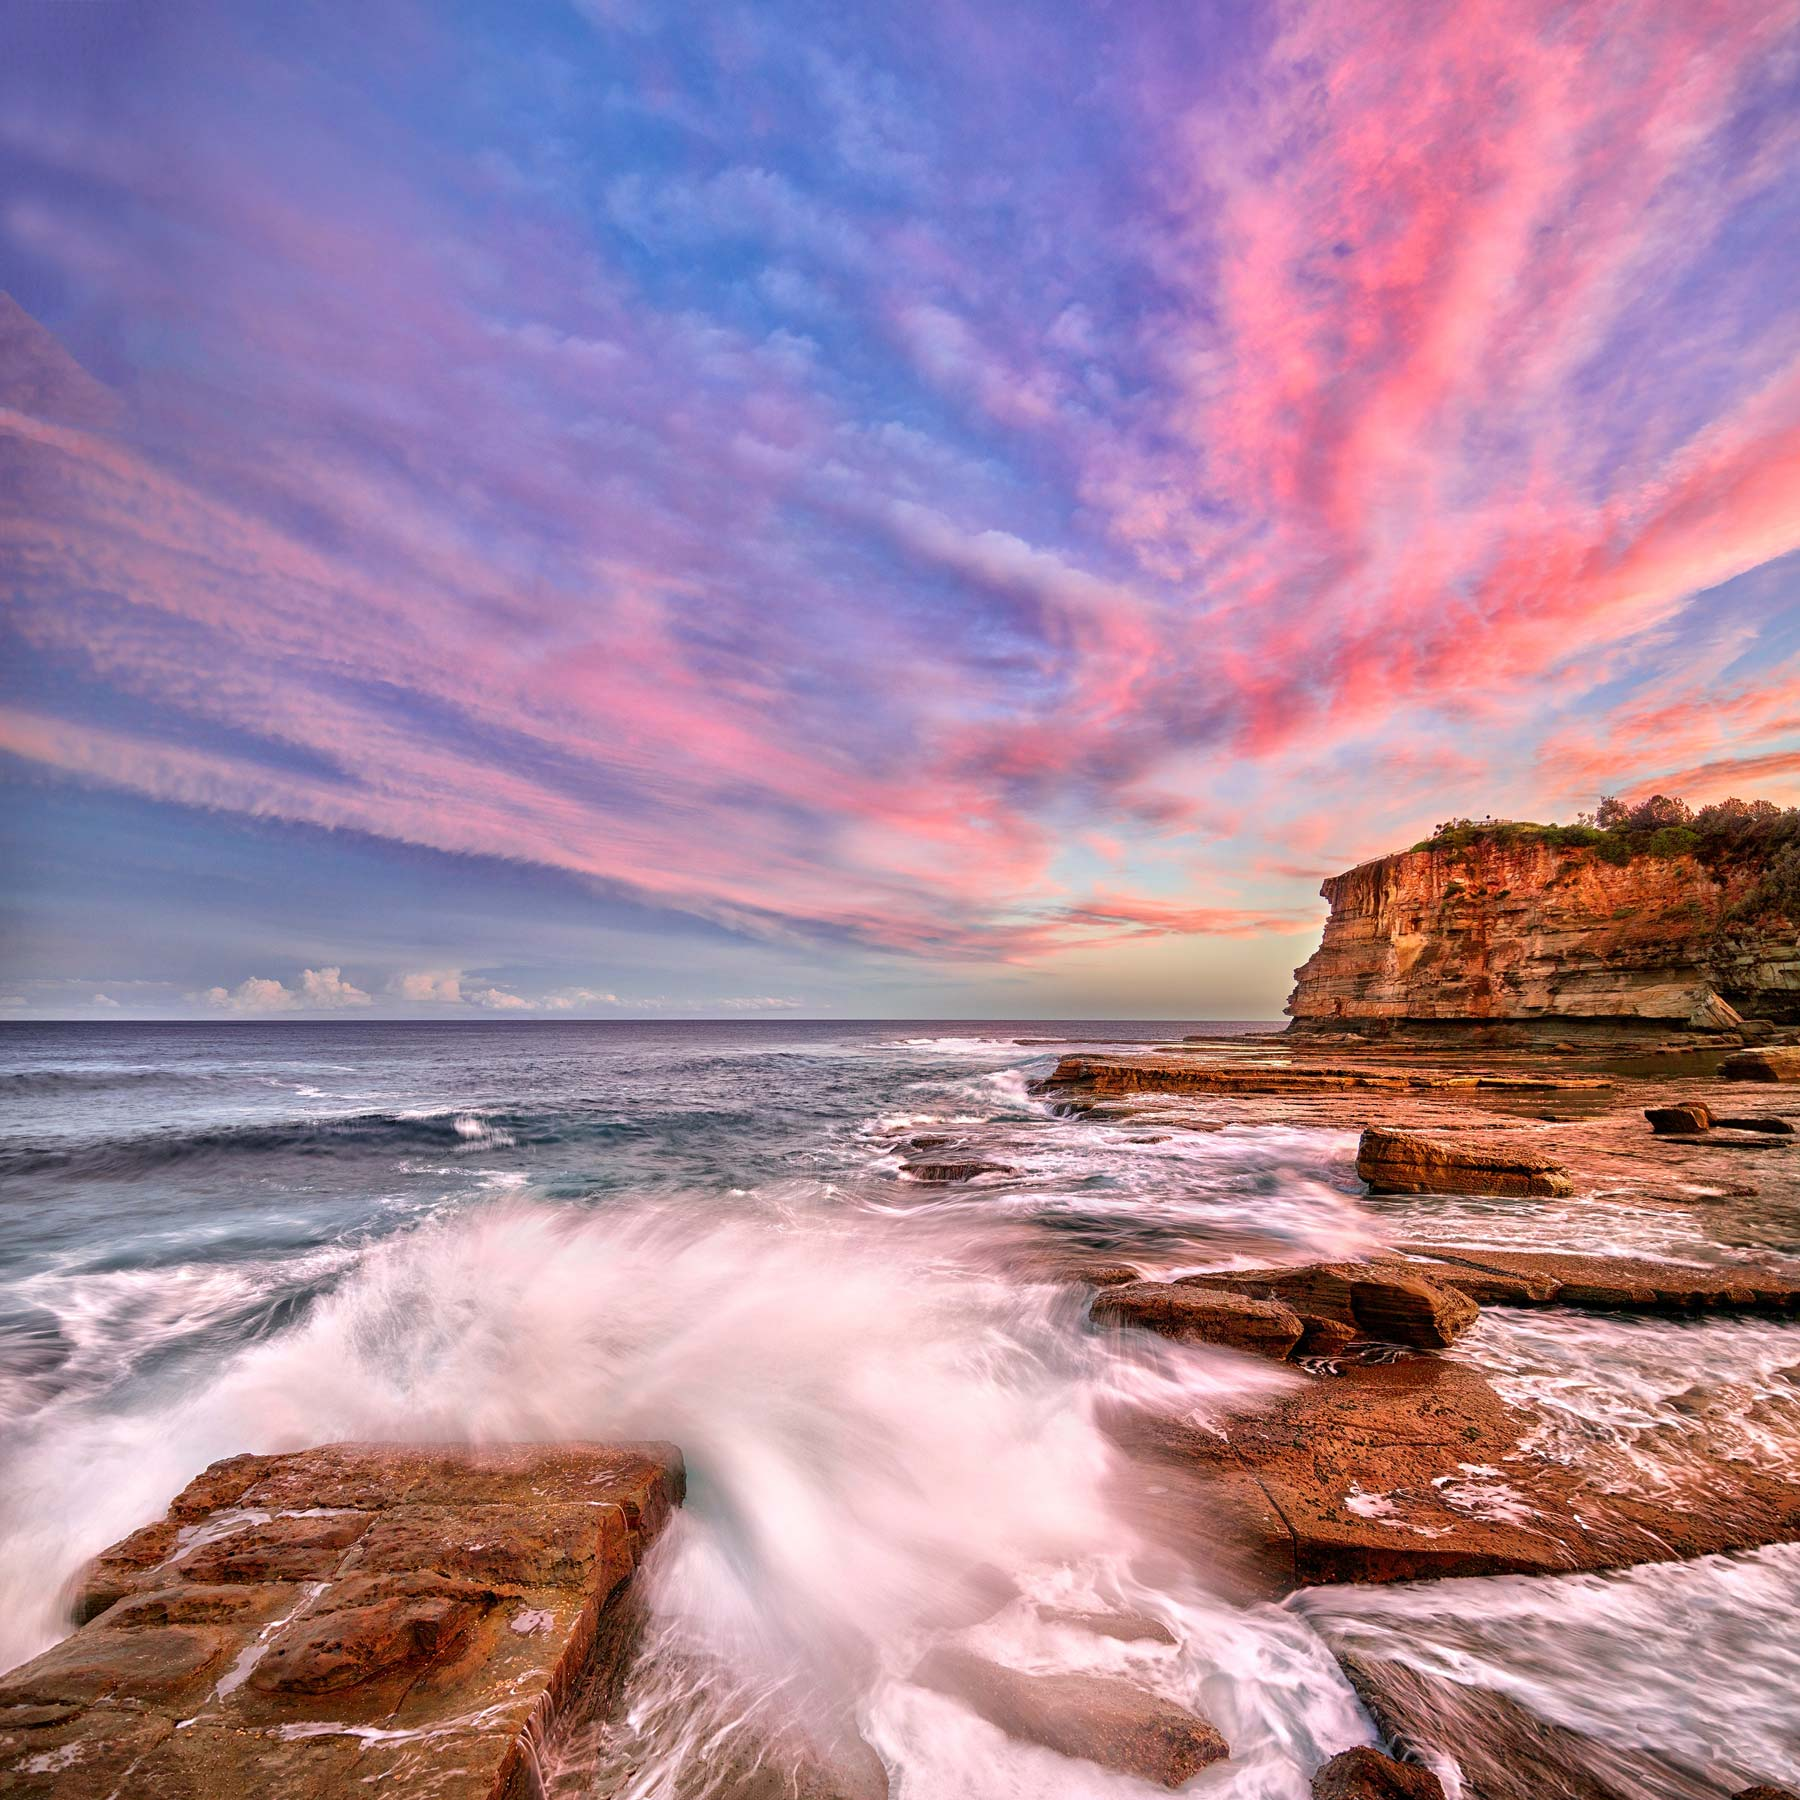 Pastel sunset over The Skillion, Terrigal, NSW.